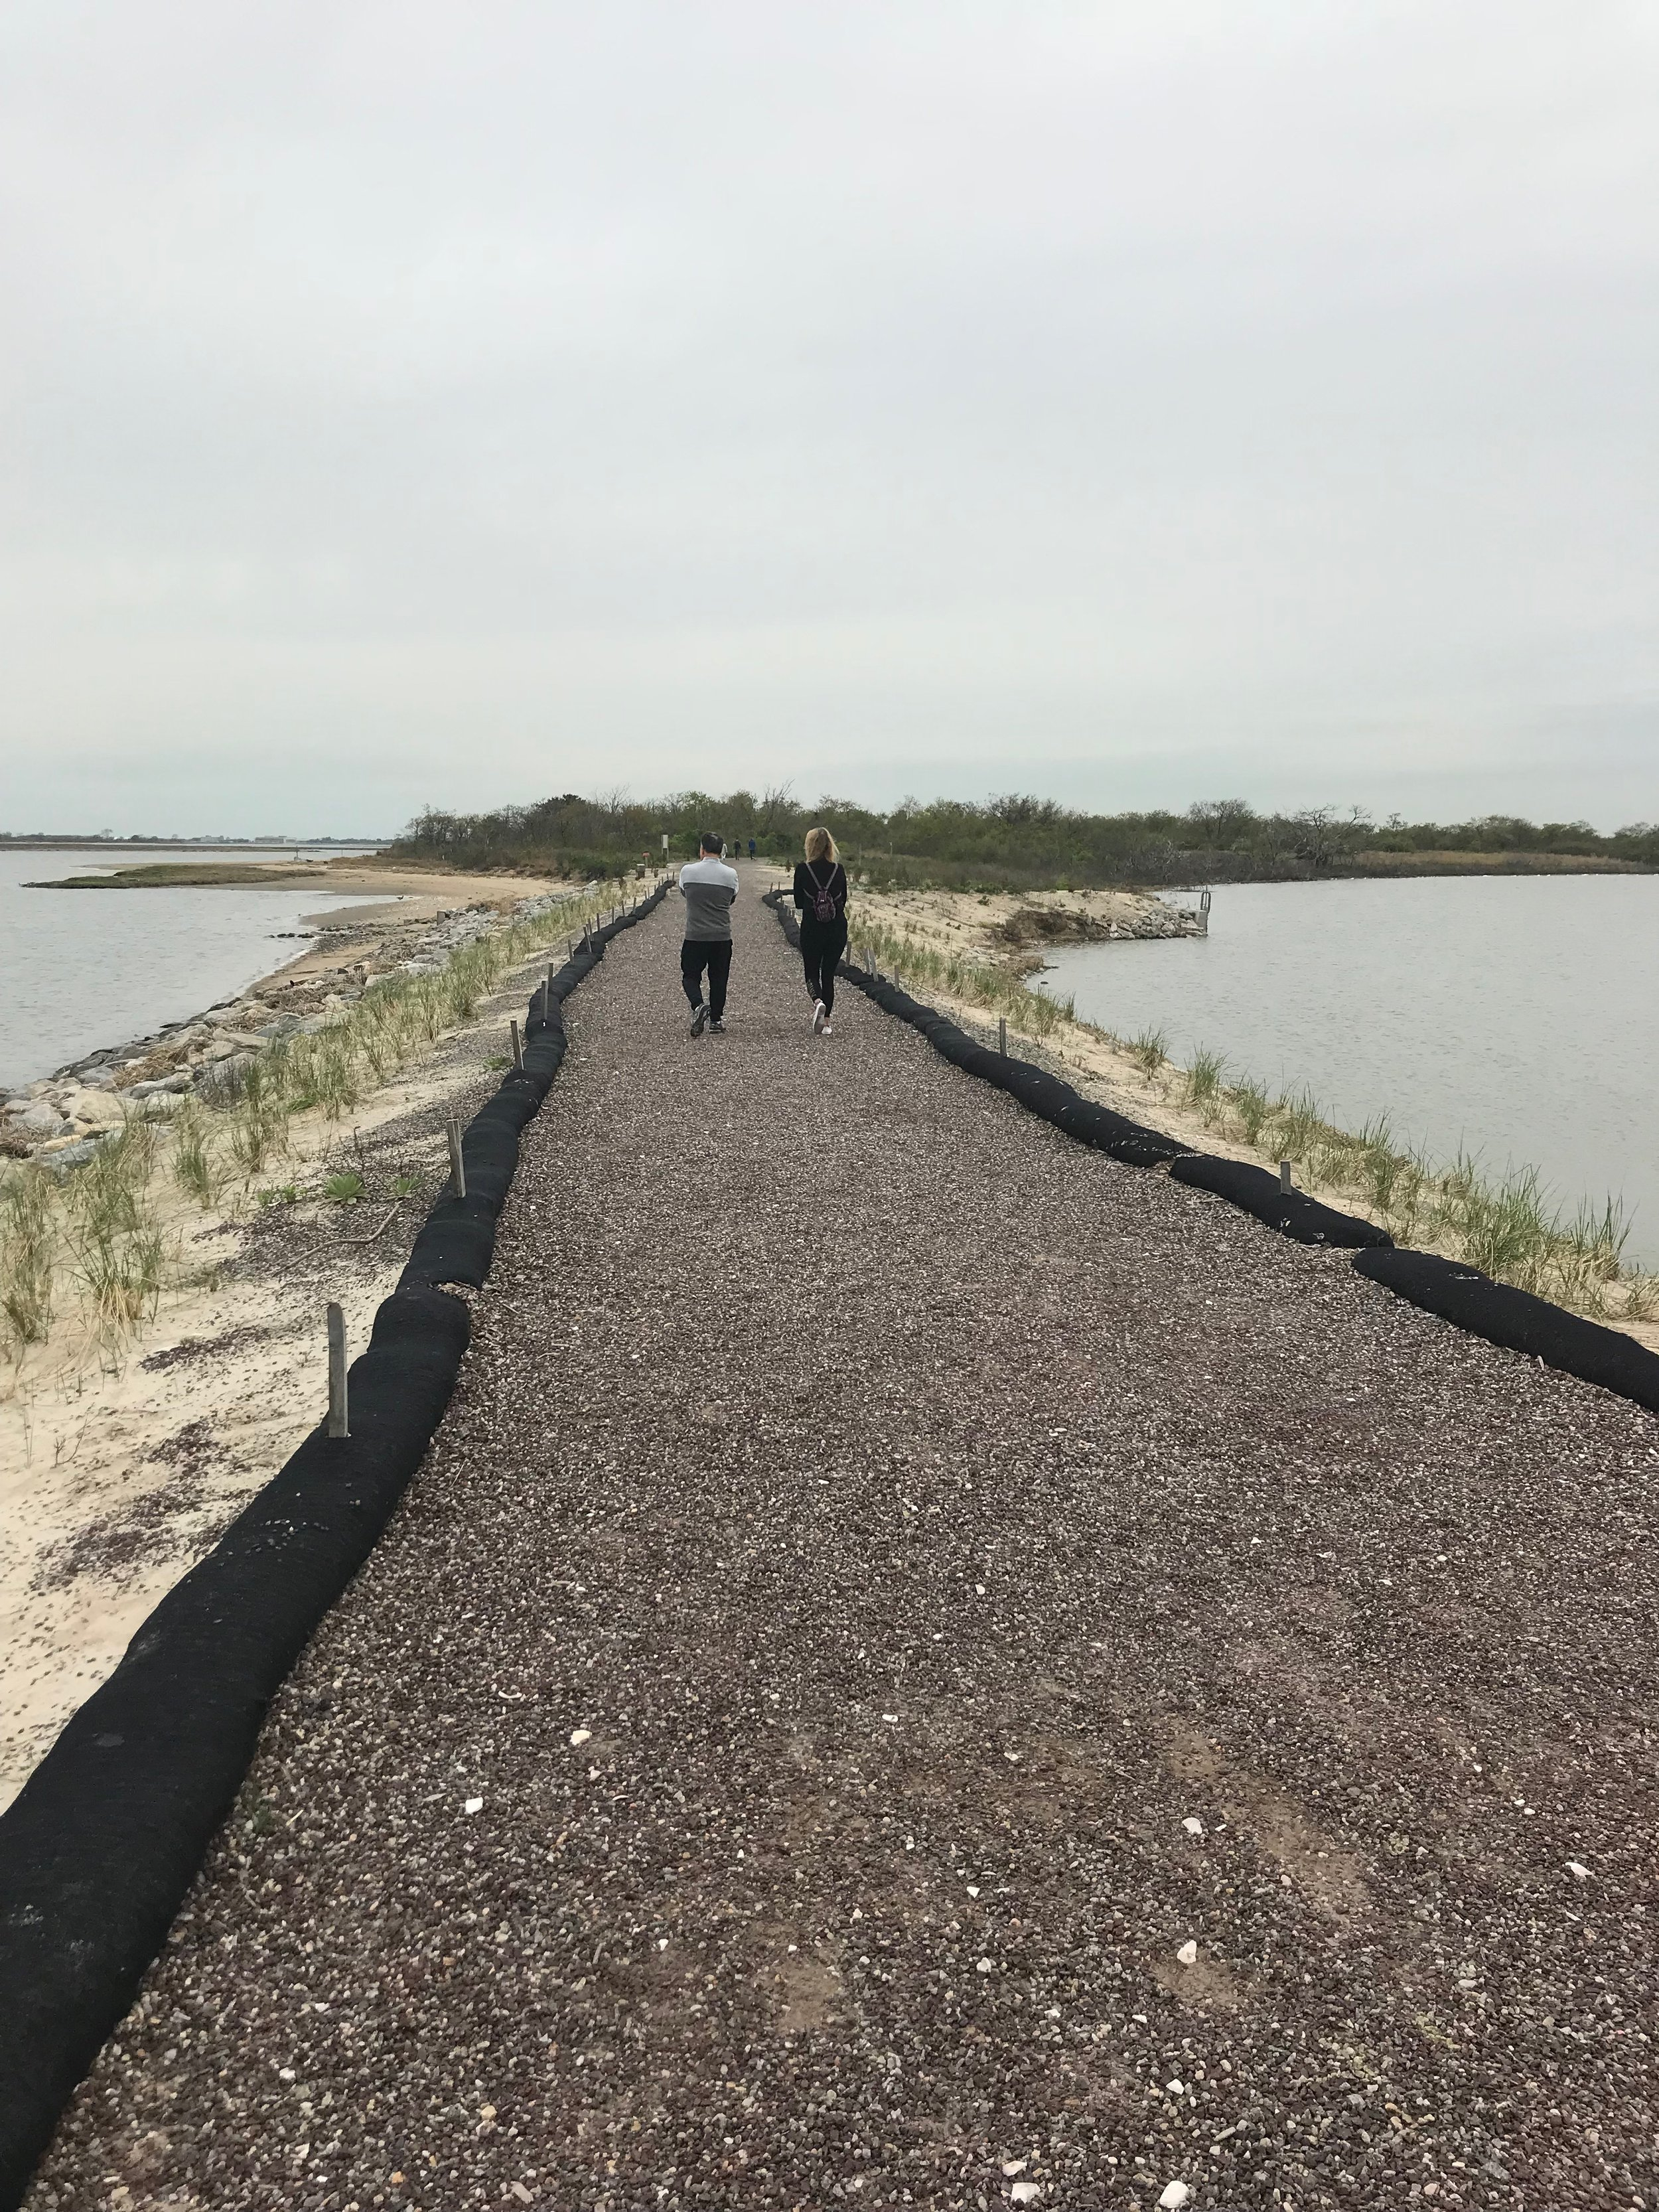 The West Pond Trail at the National Park Service's Jamaica Bay Wildlife Refuge.  Eagle  photo by Jonathan Sperling.